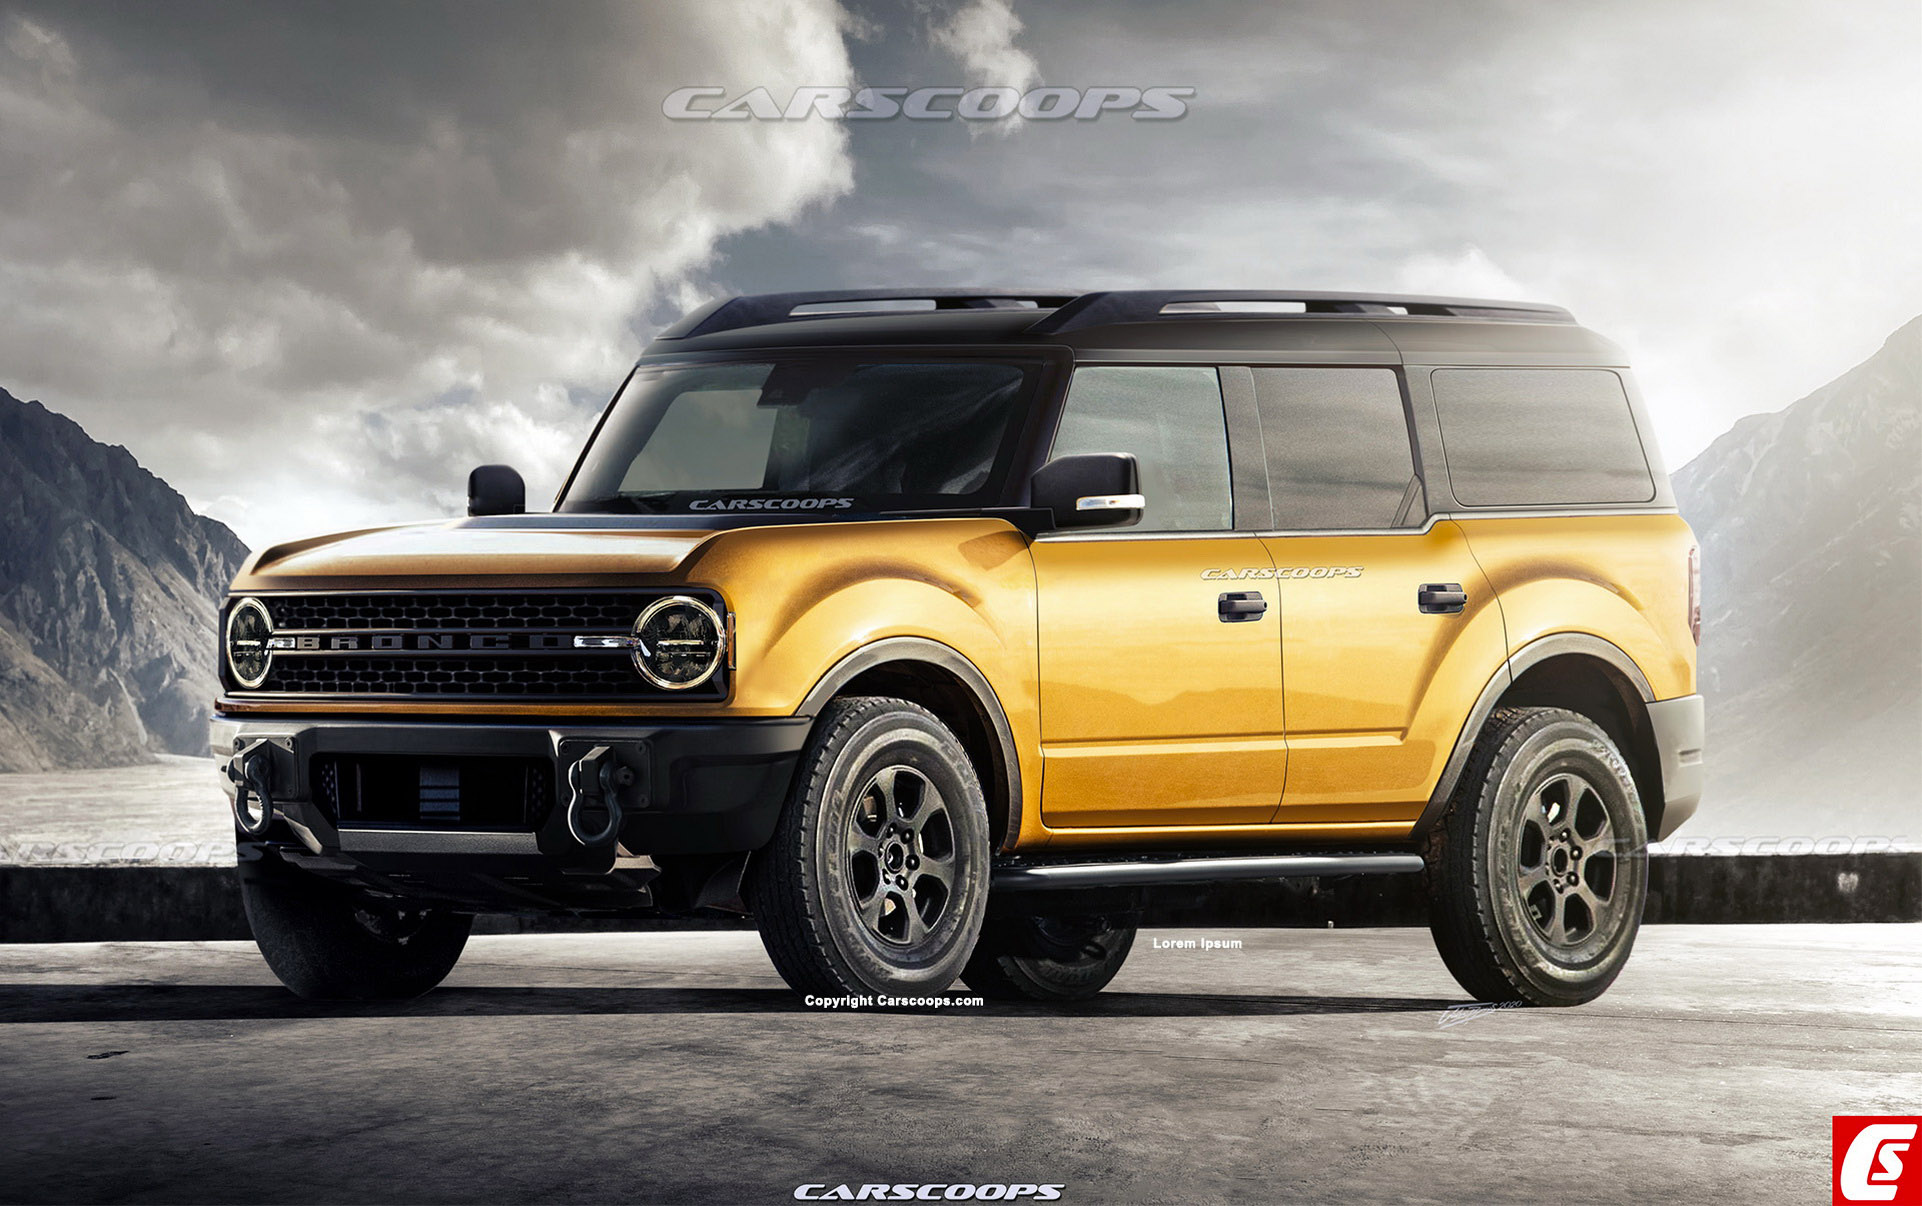 2021 Ford Bronco: Design, Power And Everything Else We Know